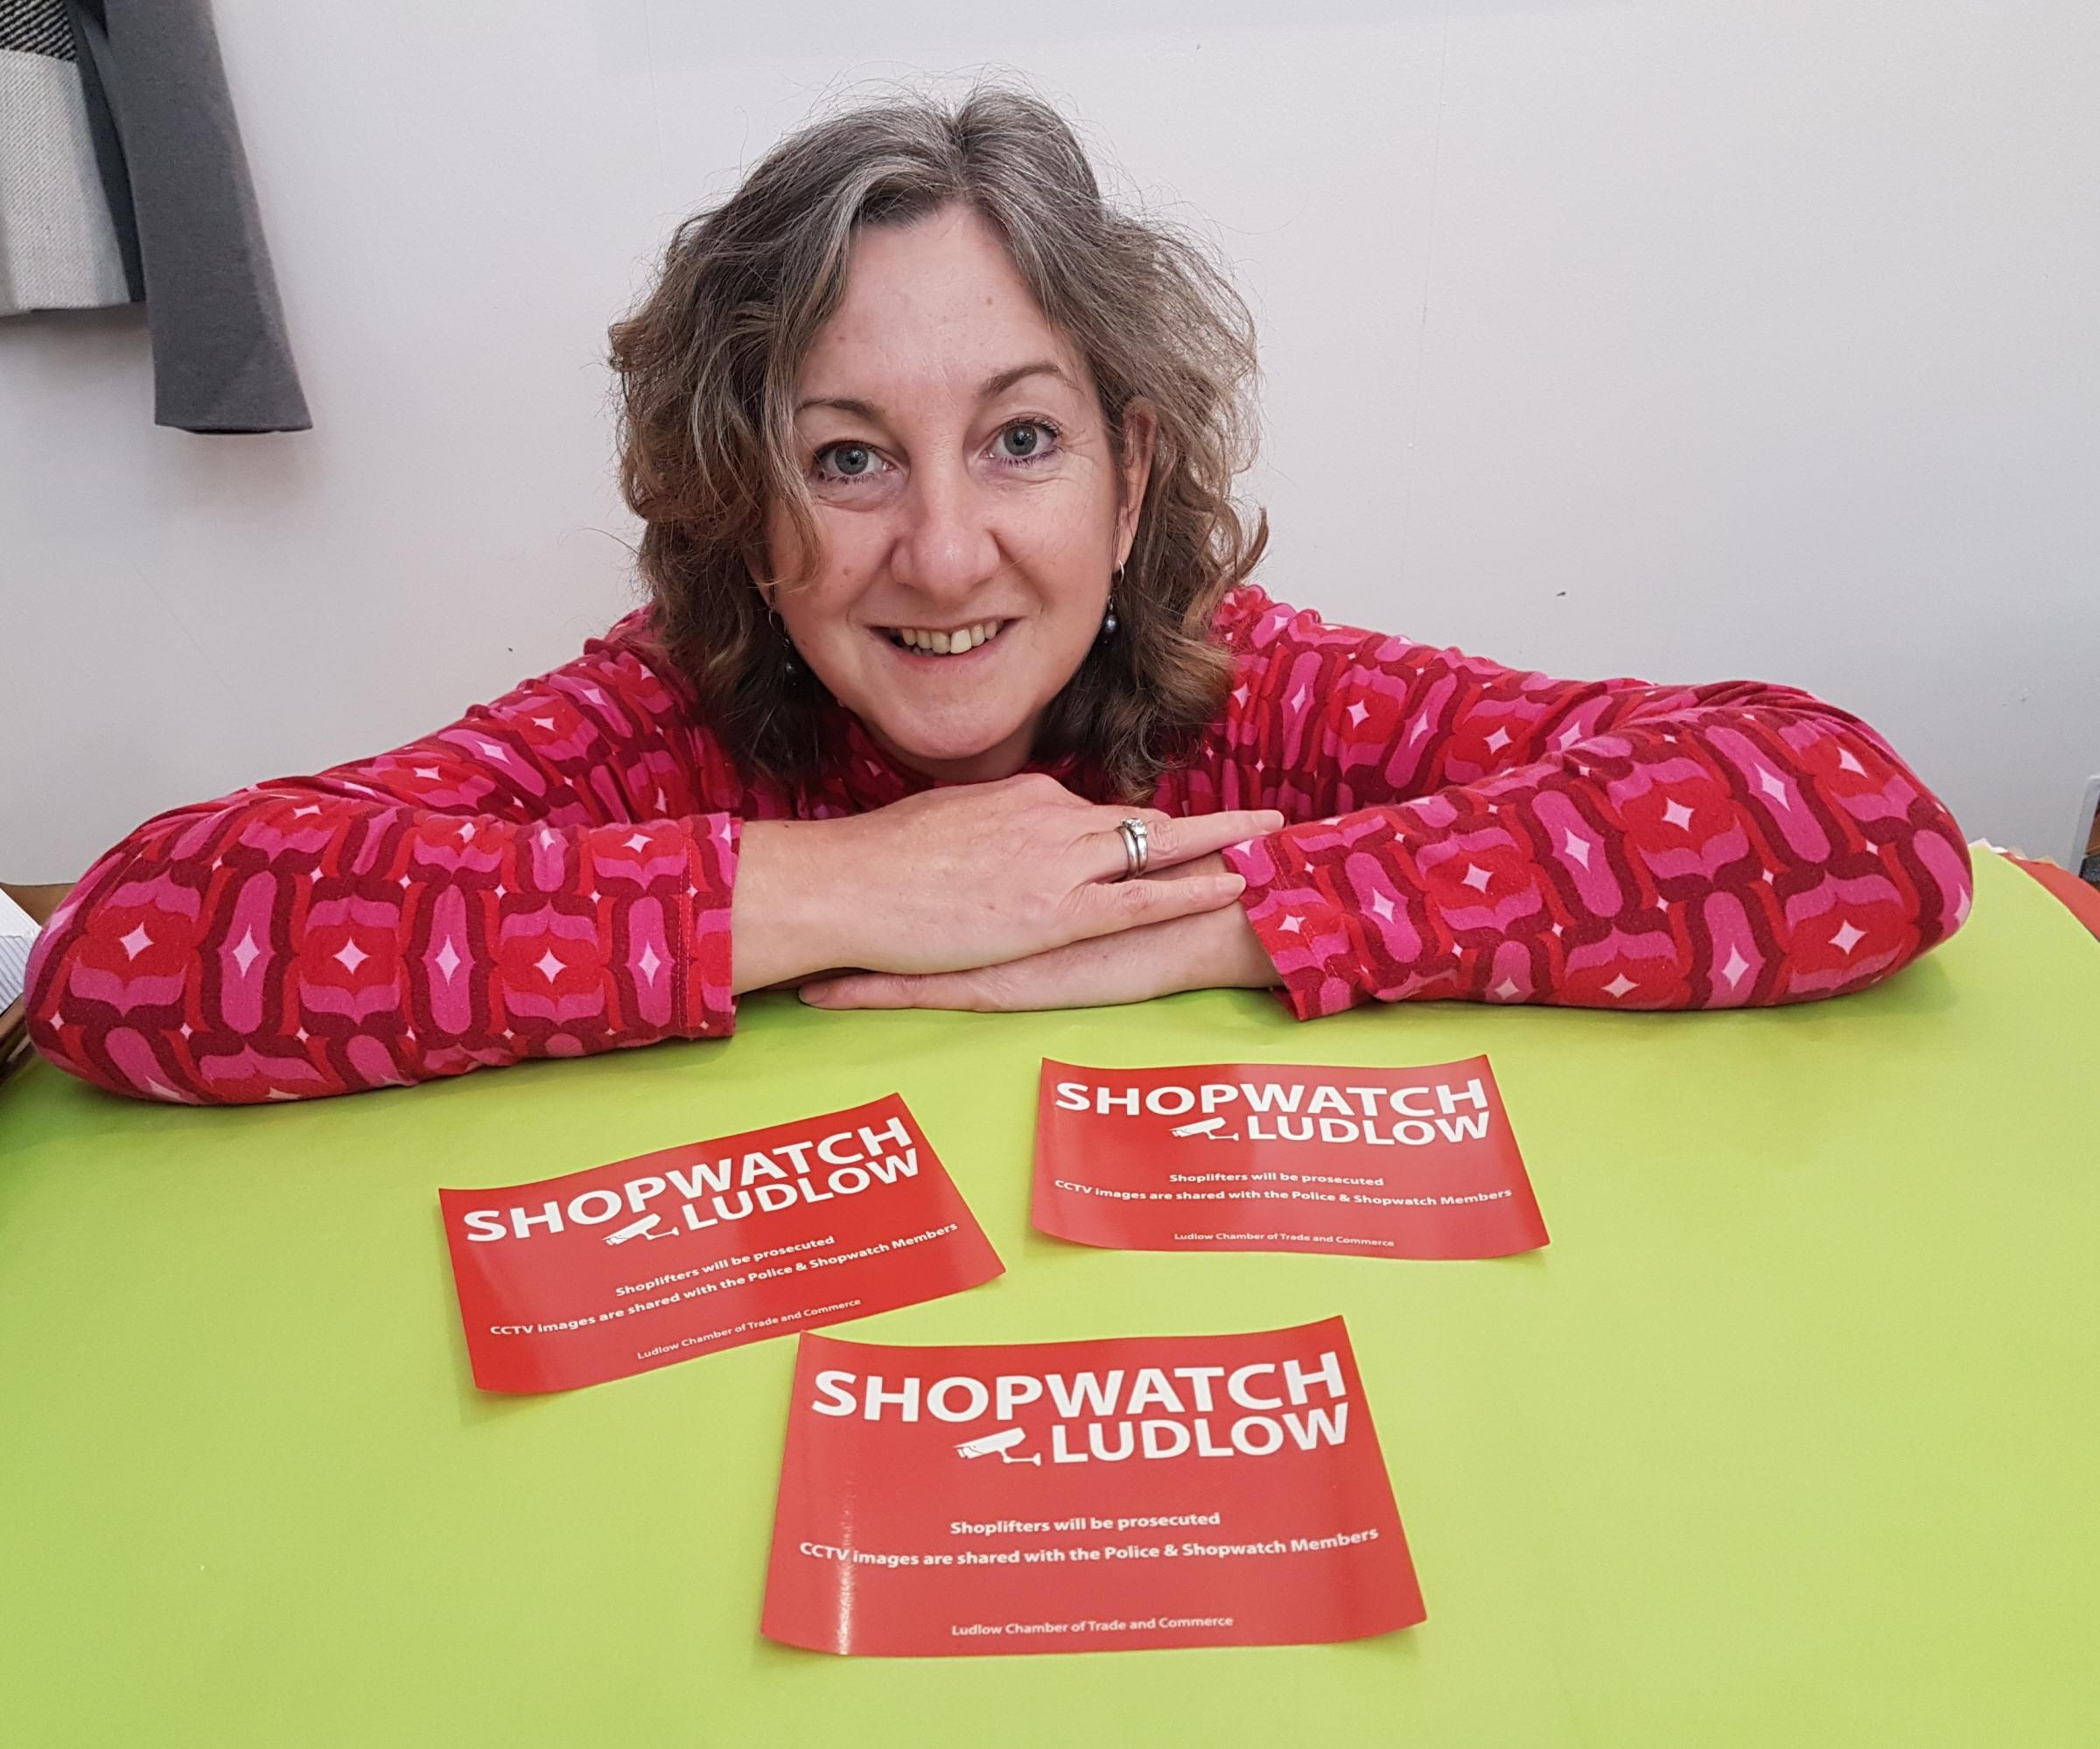 Vicki Ortwell from Eclectica with Shopwatch window stickers